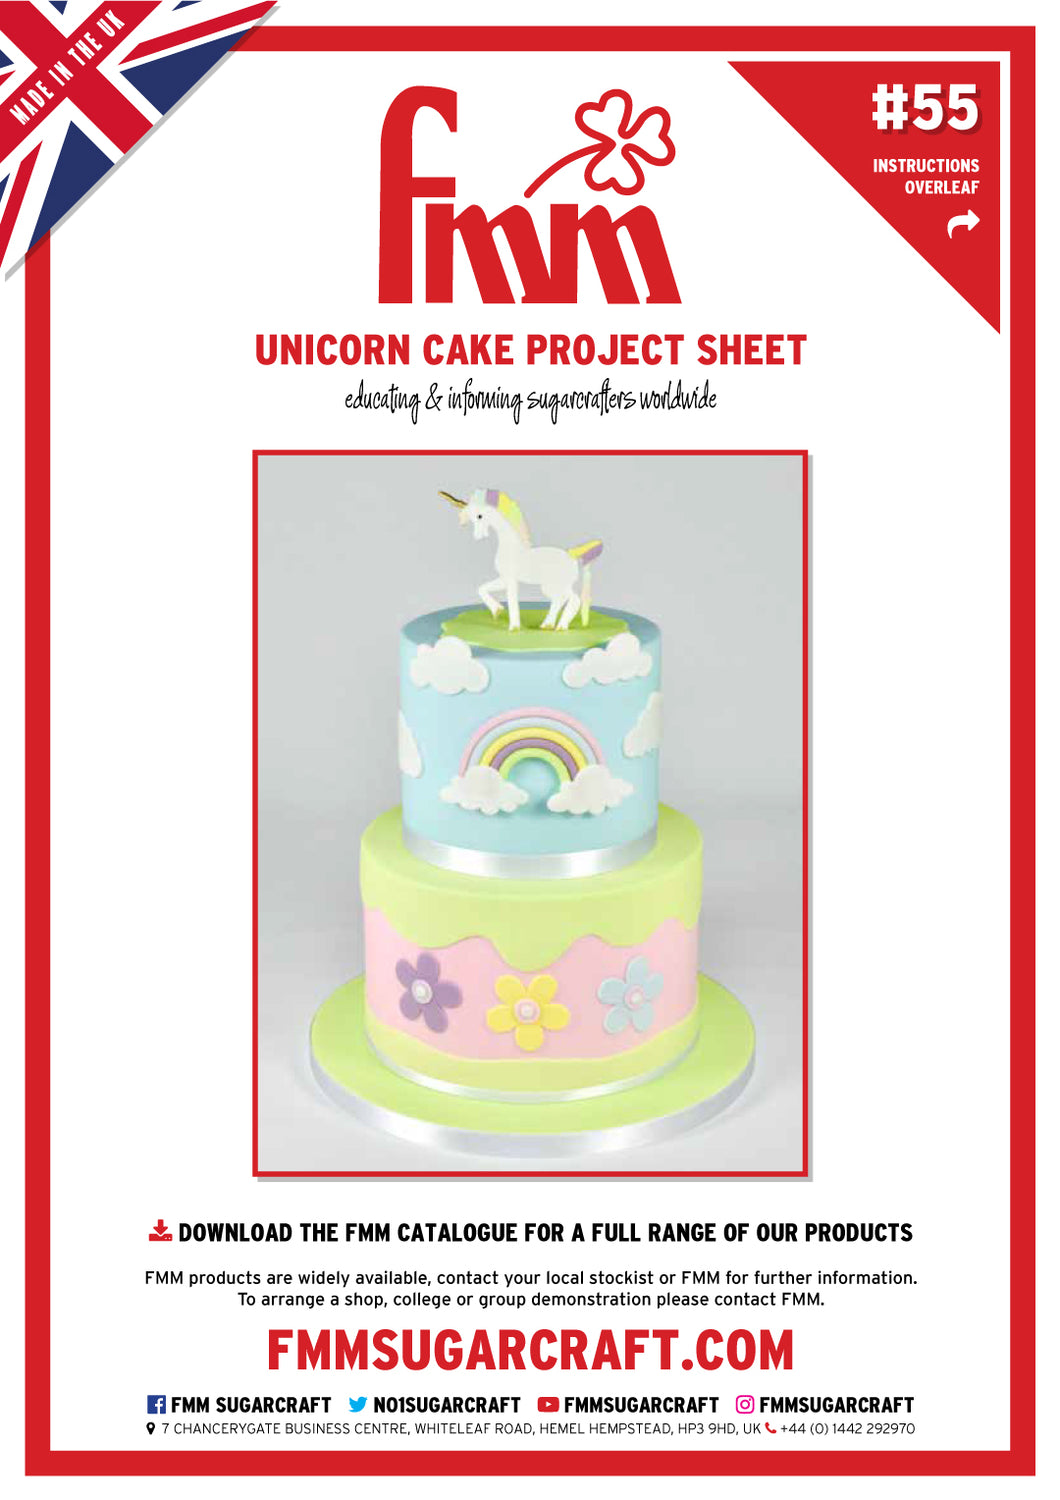 FMM Unicorn Cake Project Sheet